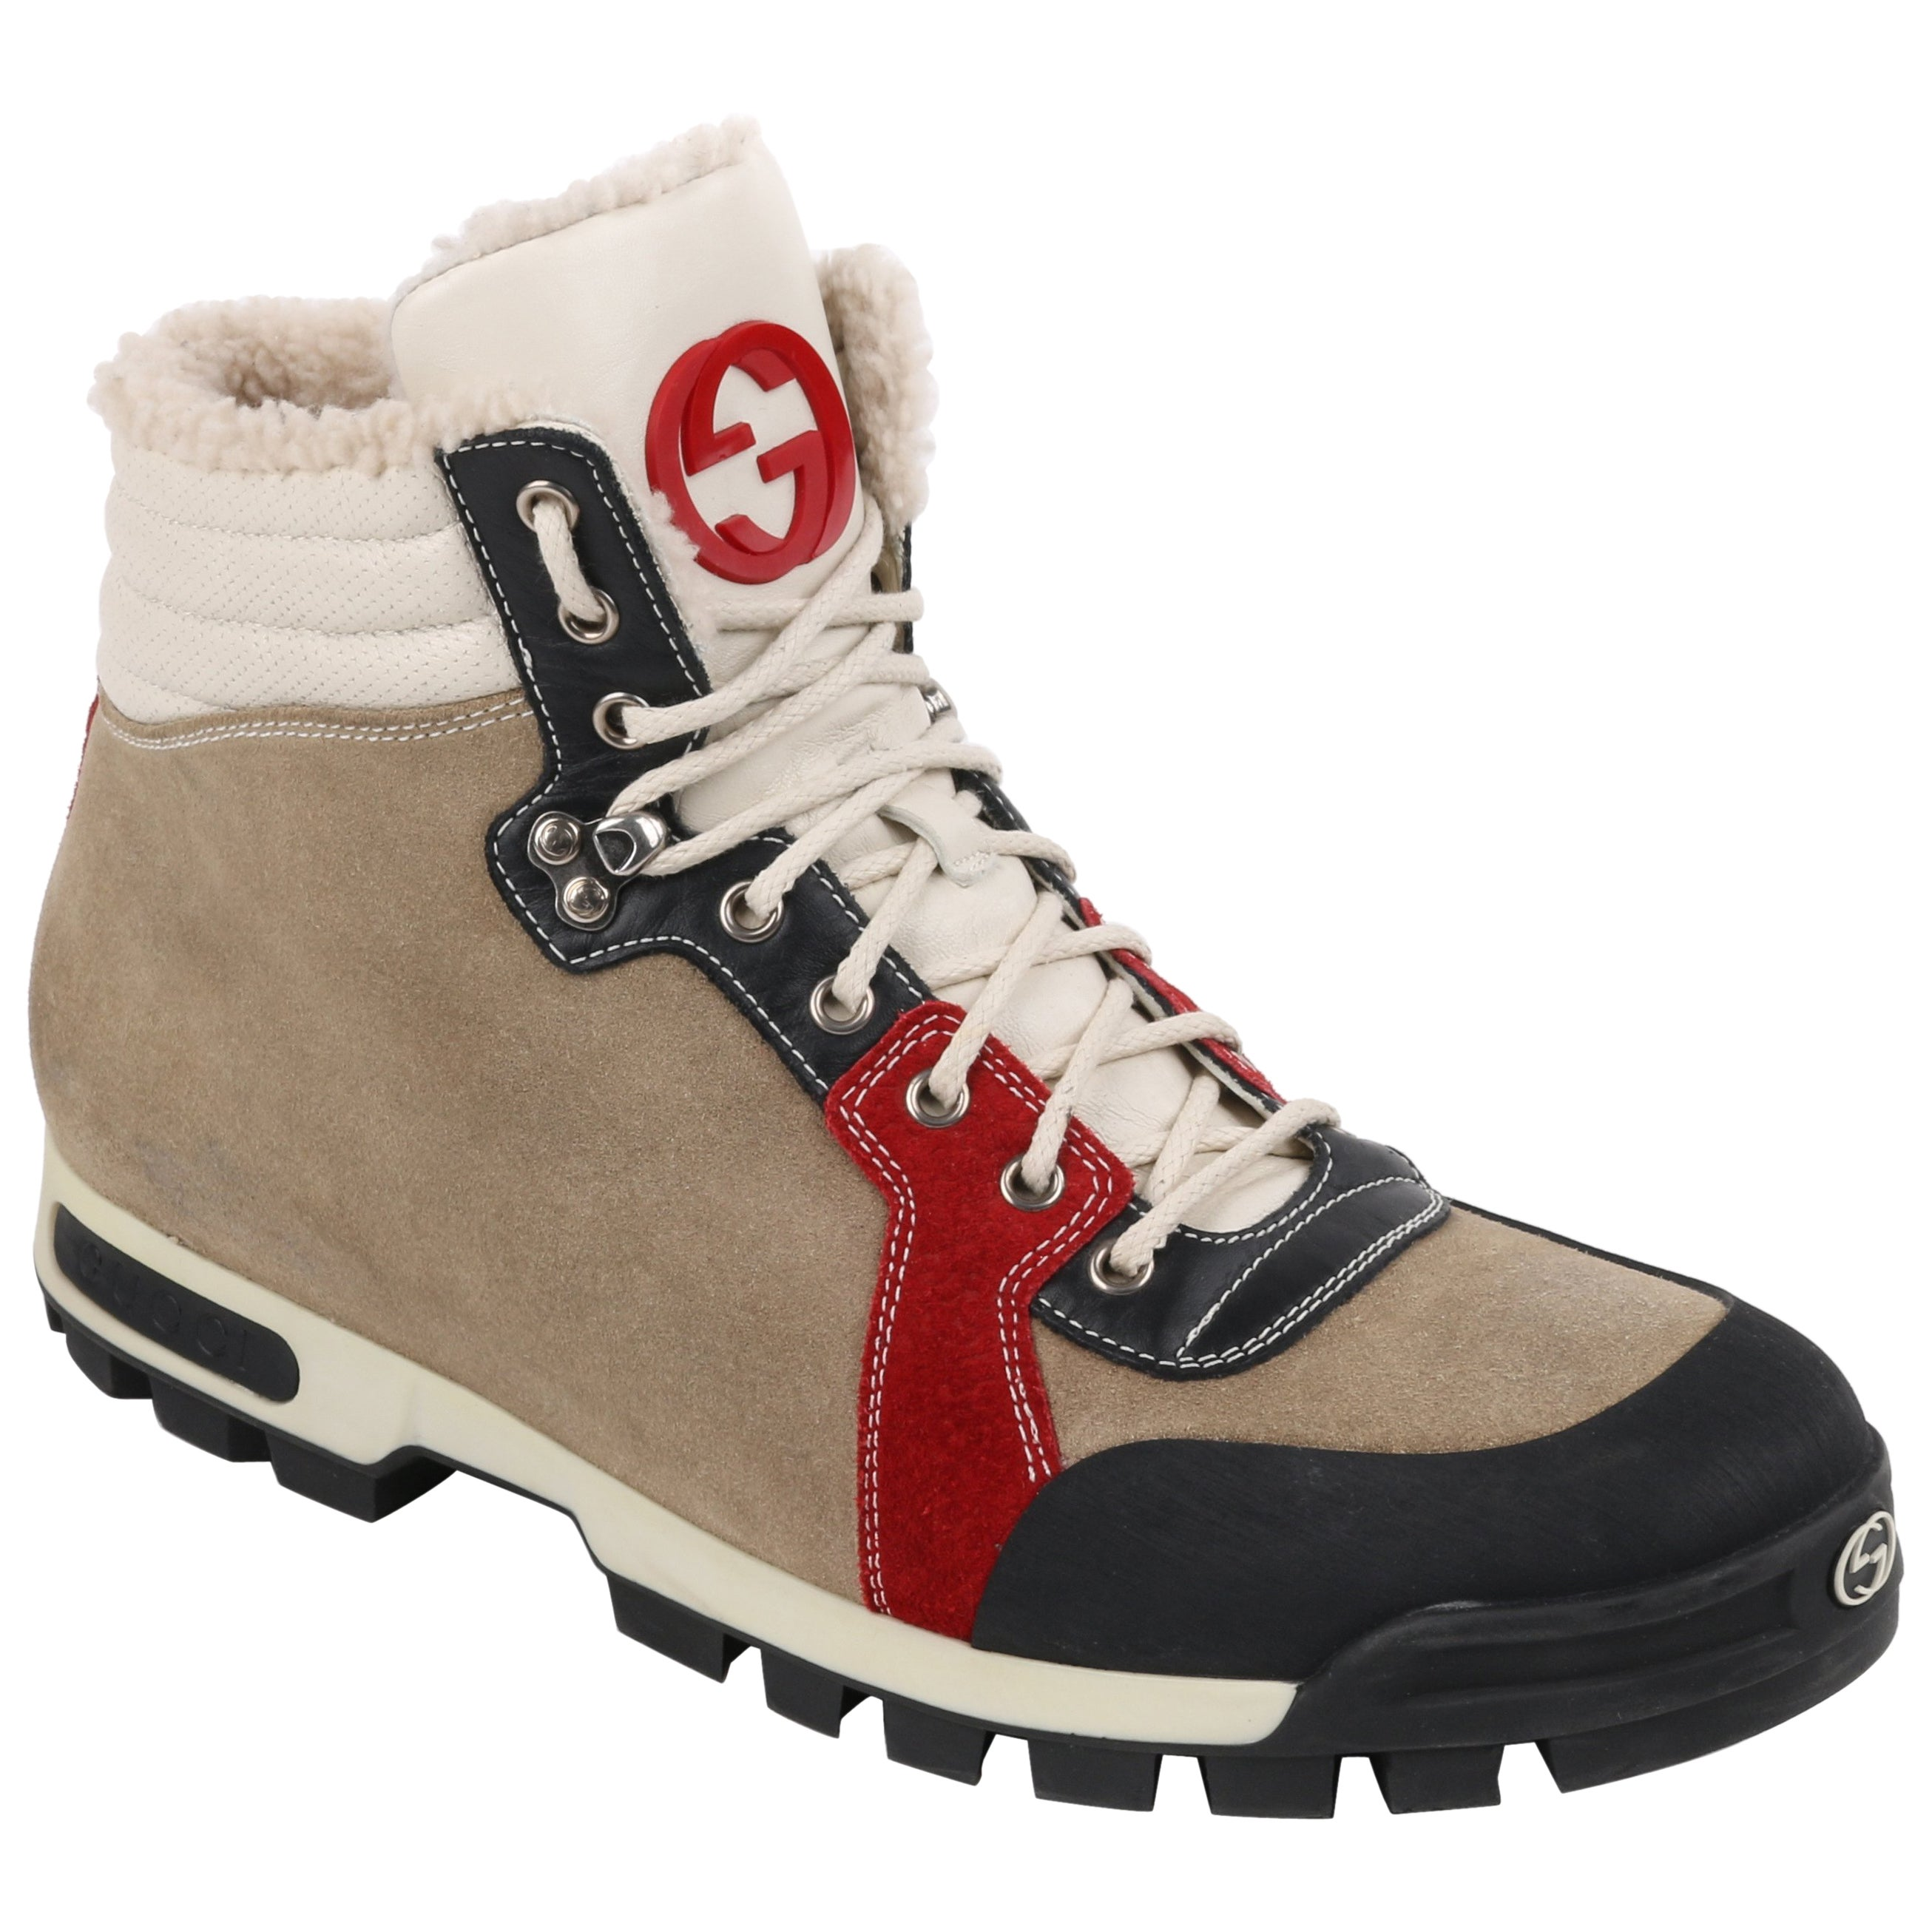 19aba88bf5d GUCCI Suede Leather Shearling Lace Front Lug Sole Hiking Boots RARE For  Sale at 1stdibs